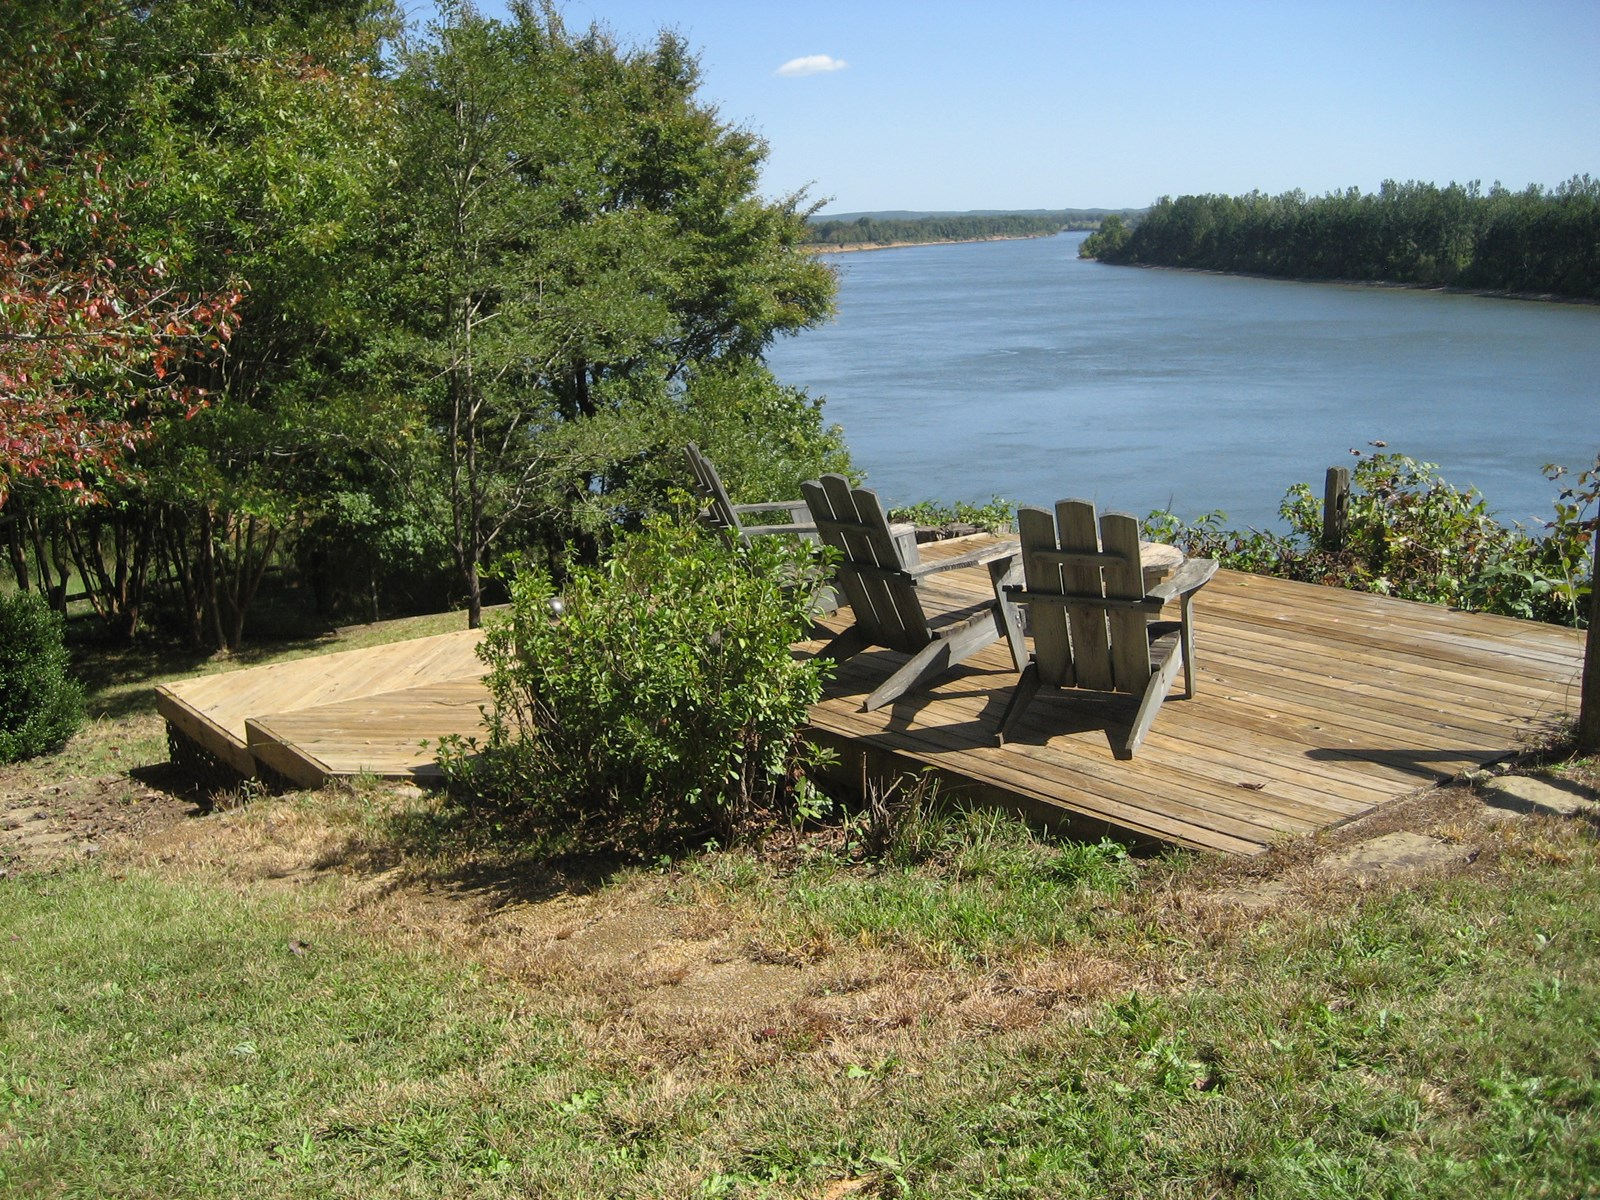 WATERFRONT HOME FOR SALE – RIVERFRONT CABIN STYLE HOME